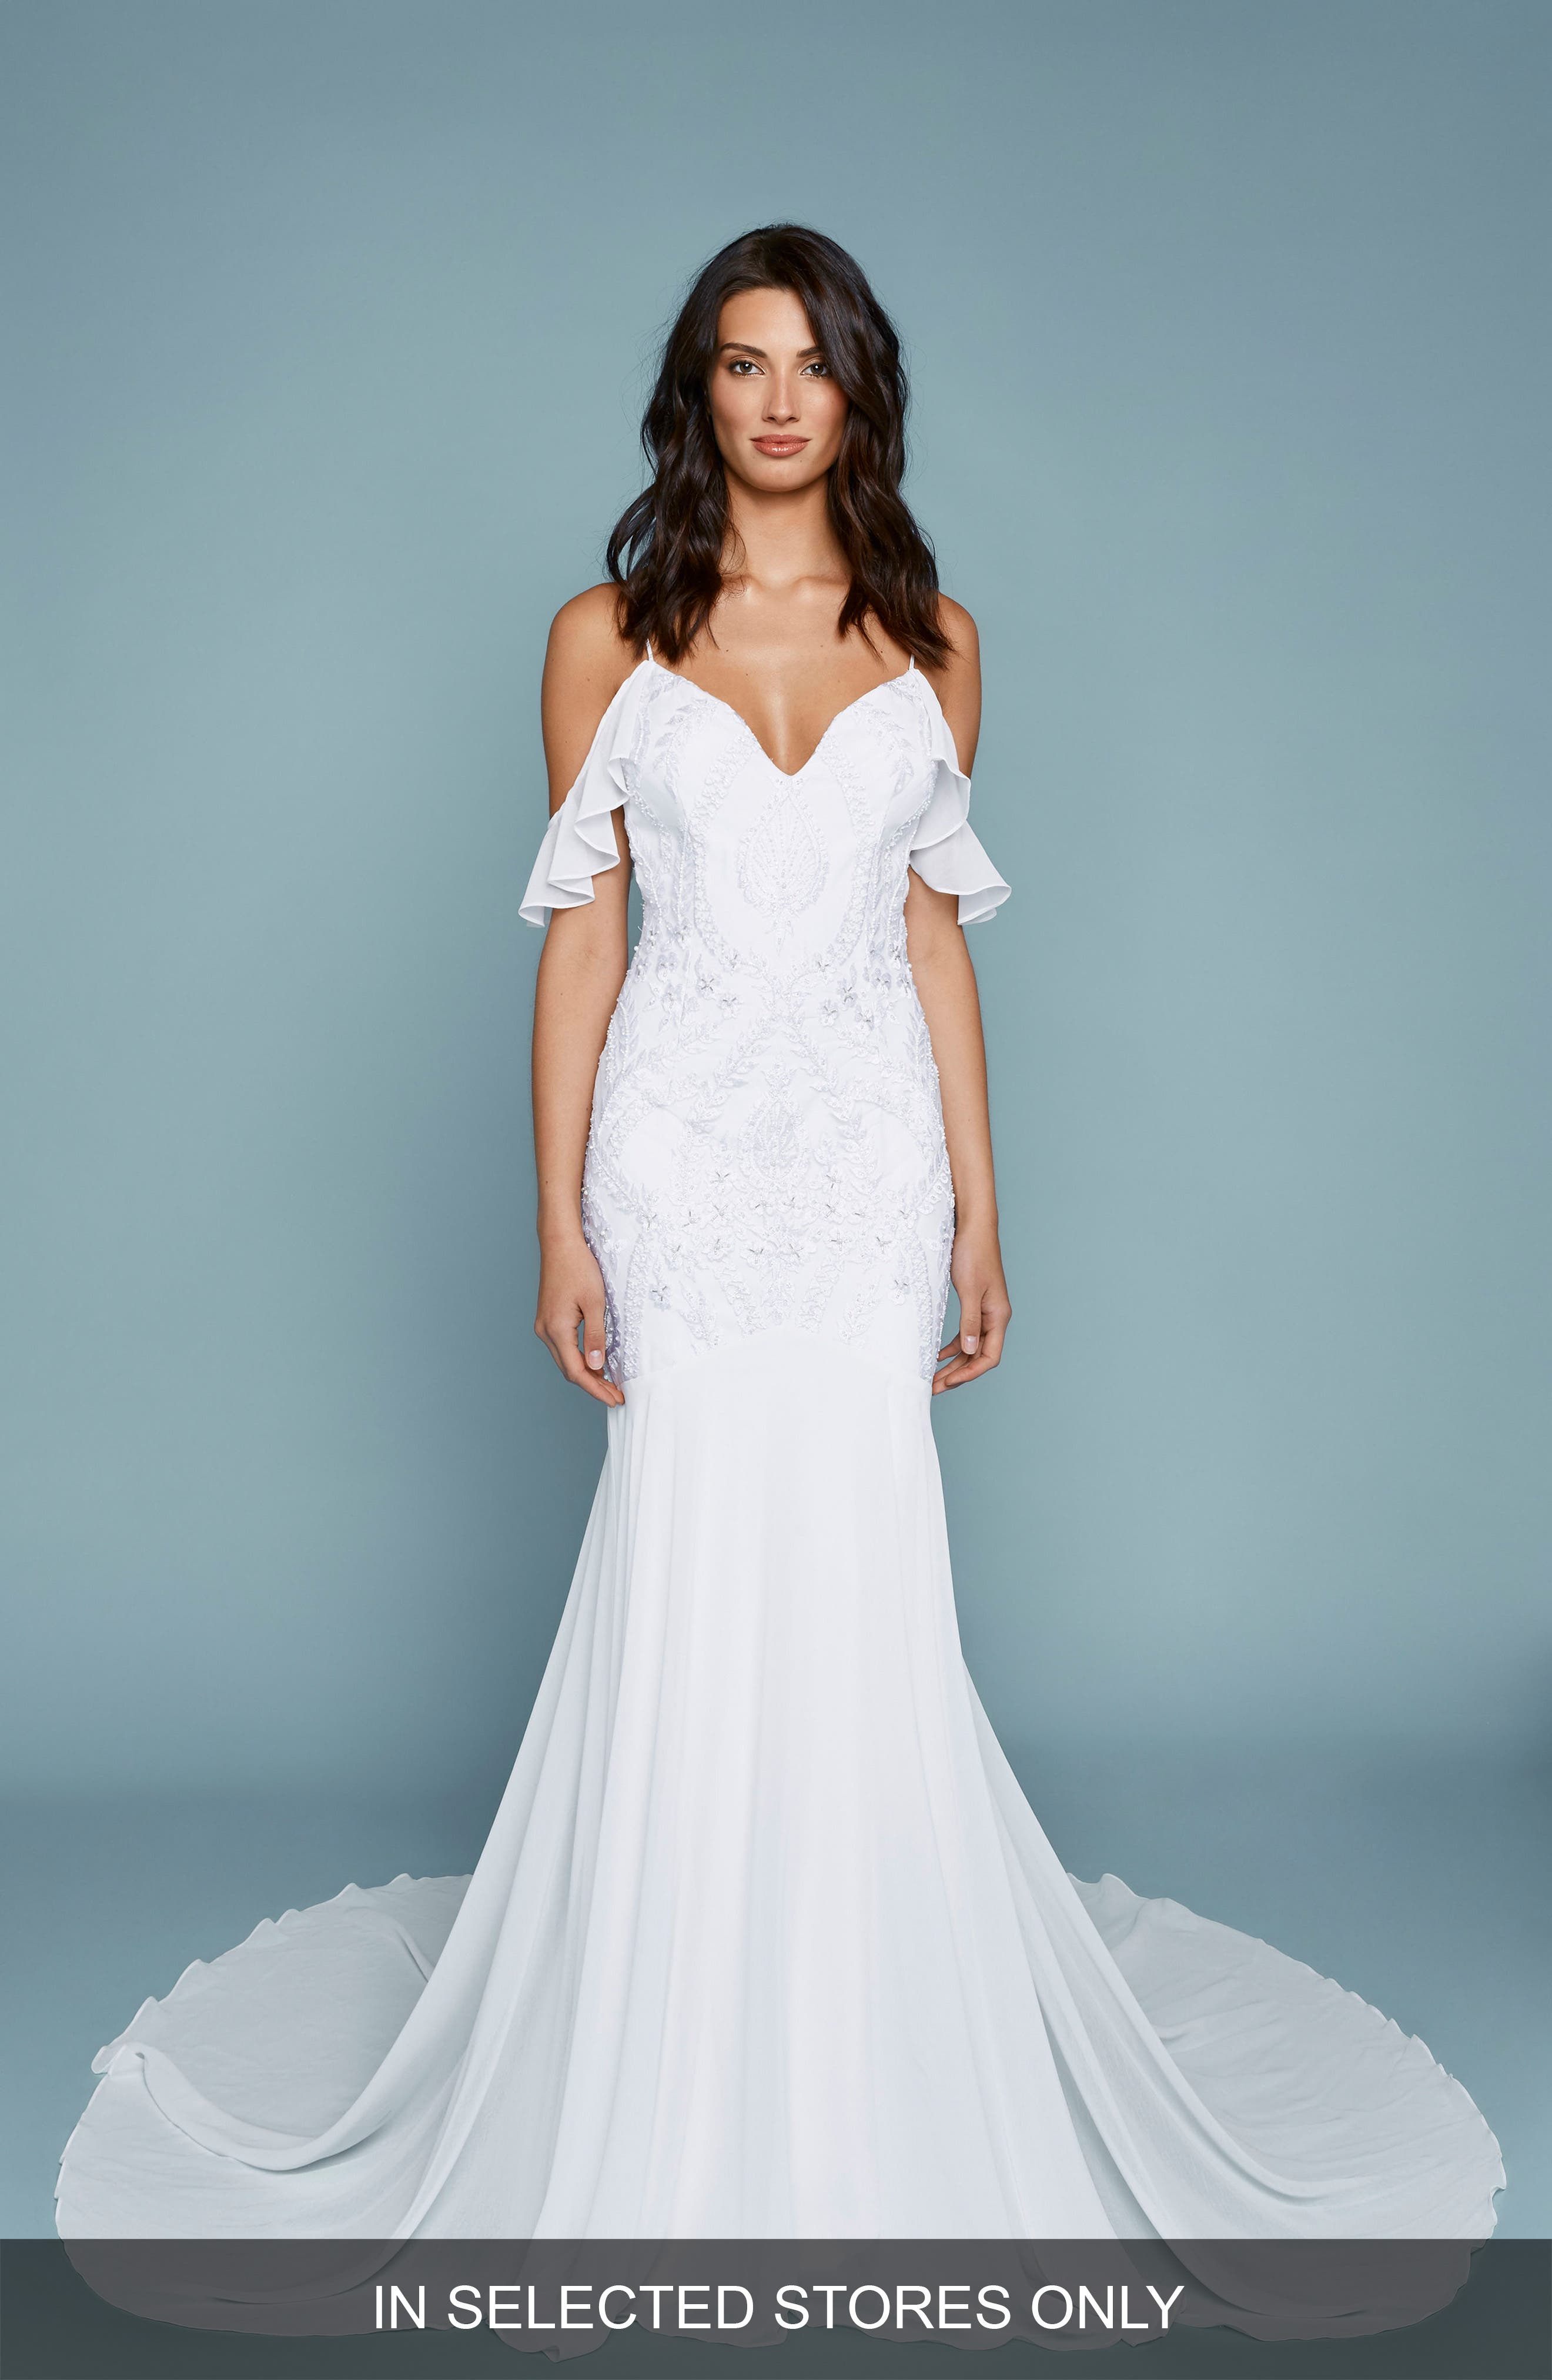 Embroidered Chiffon Off the Shoulder Mermaid Gown,                             Main thumbnail 1, color,                             Ivory/ Ivory